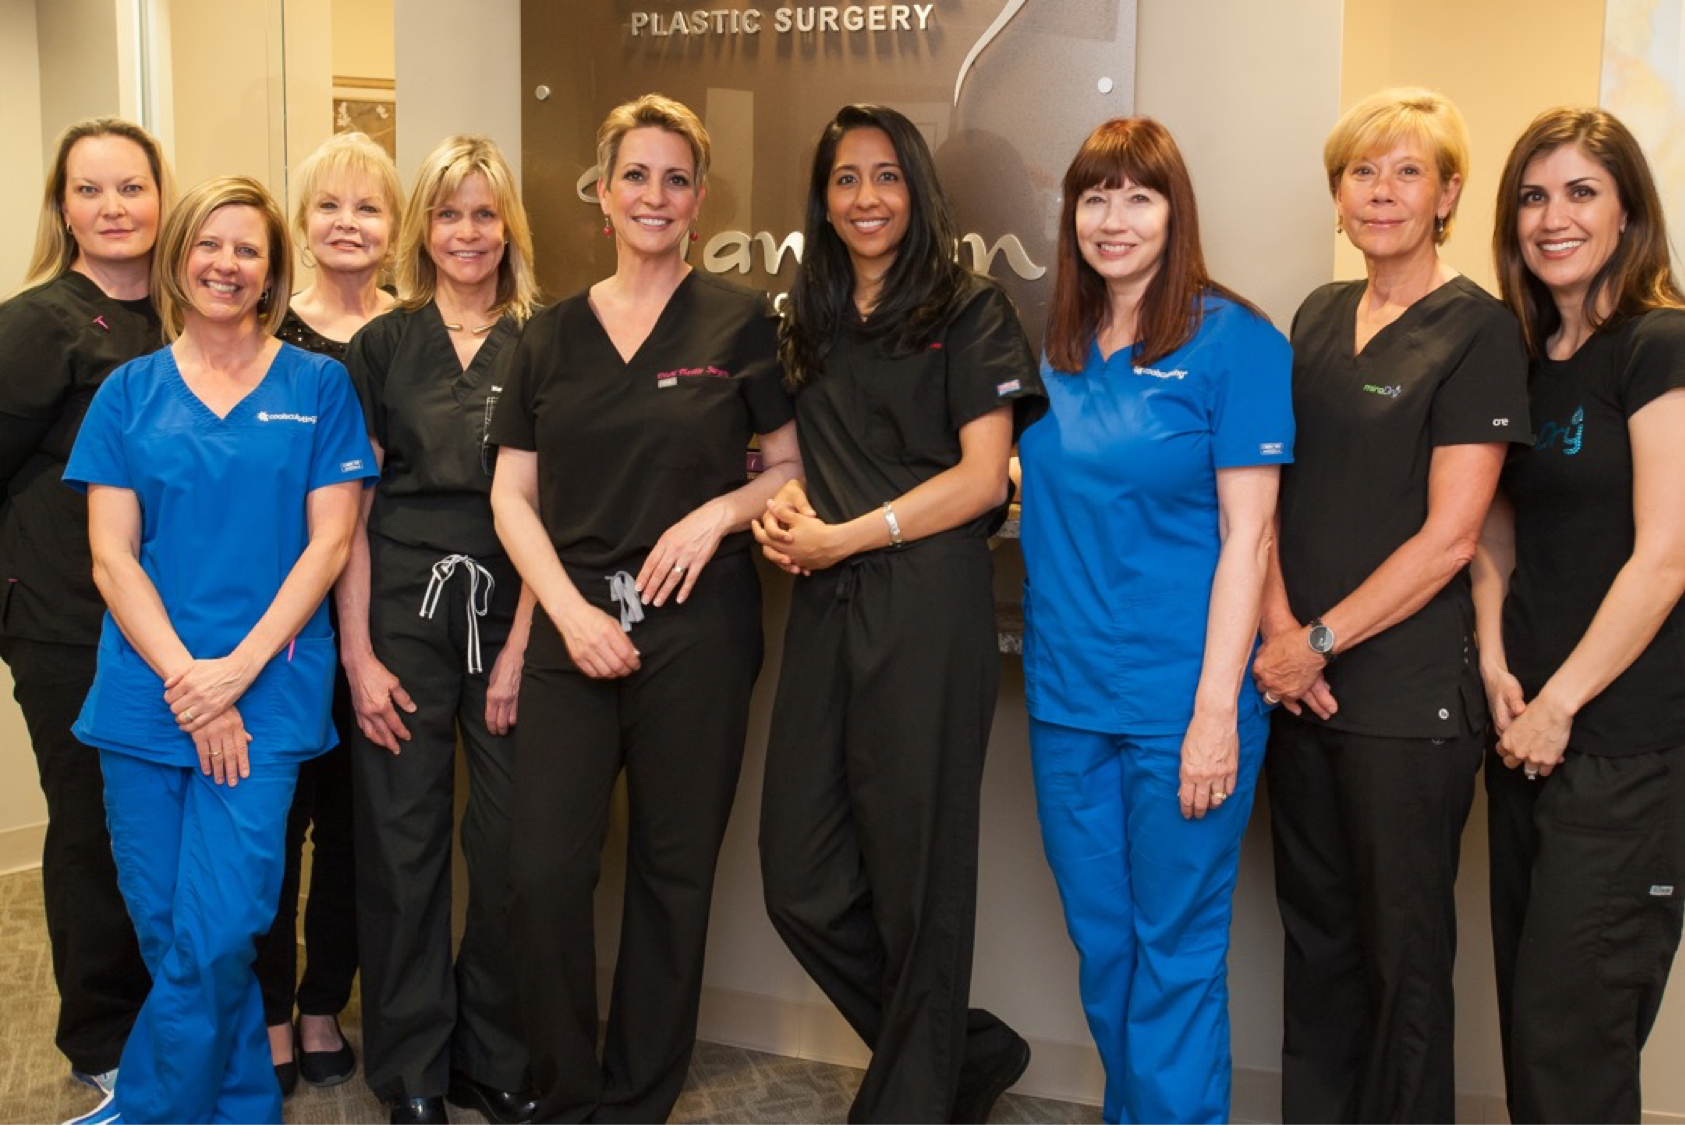 All Female Staff - Tannan Plastic Surgery